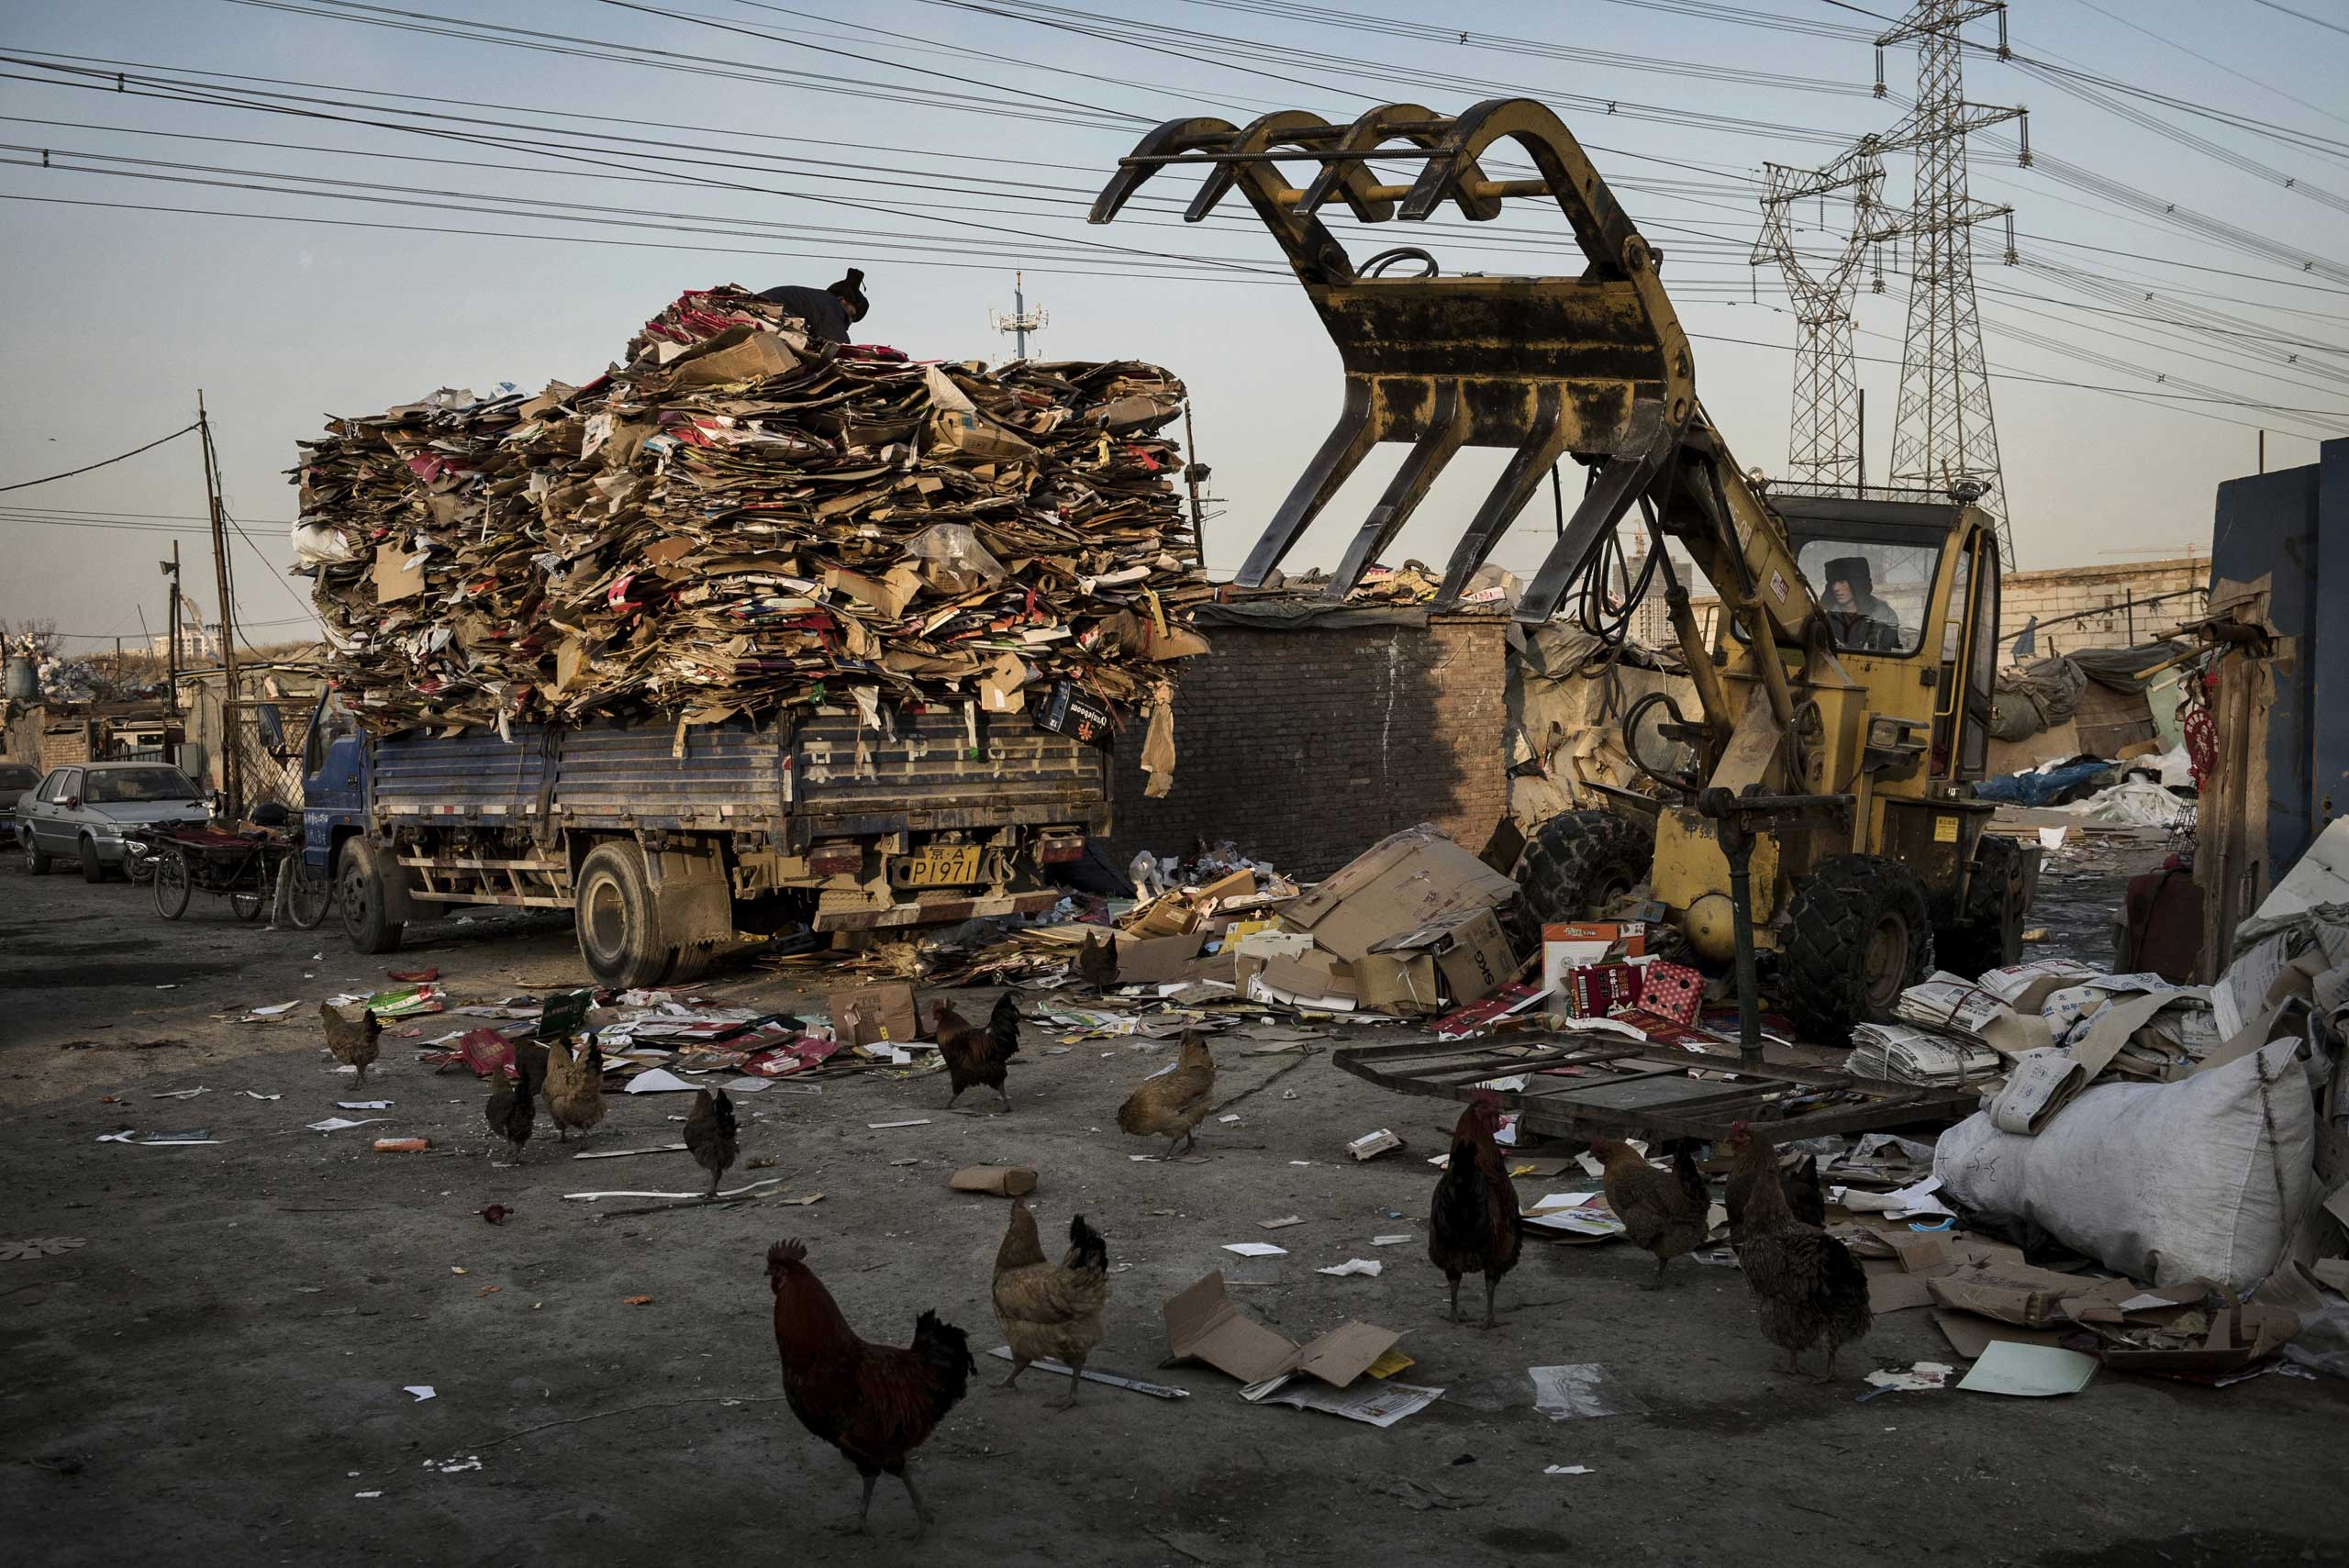 Laborers load cardboard onto a truck to be recycled in the Dong Xiao Kou village on December 11, 2014 in Beijing.